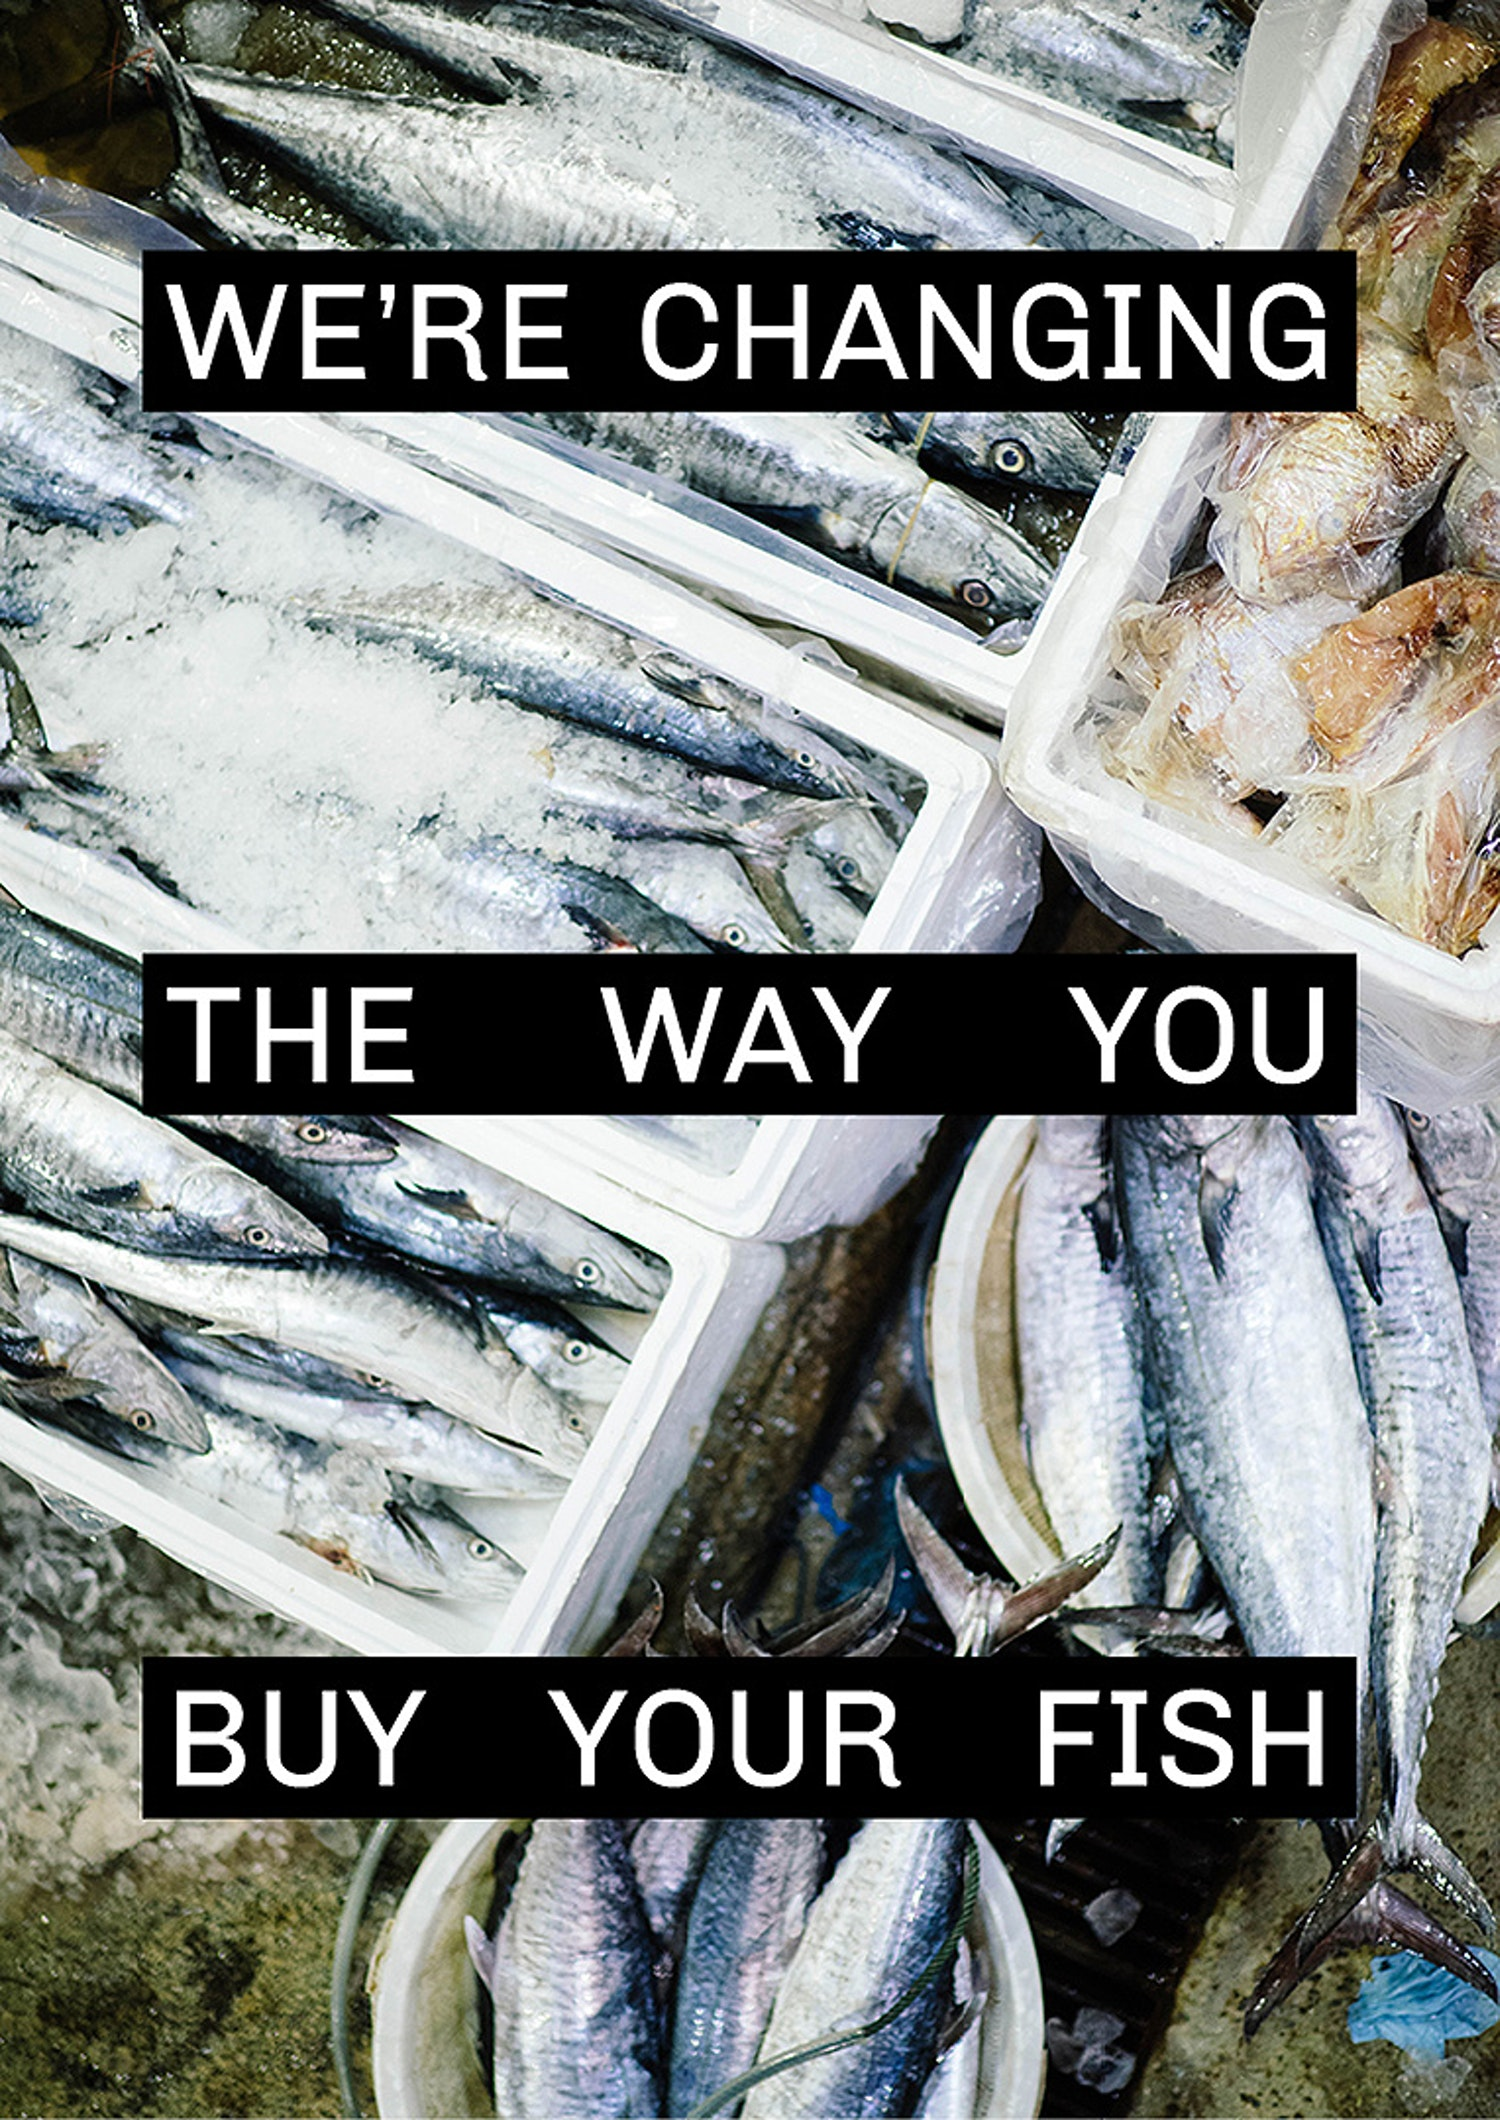 fish poster with white copy saying: we're changing the way you buy your fish